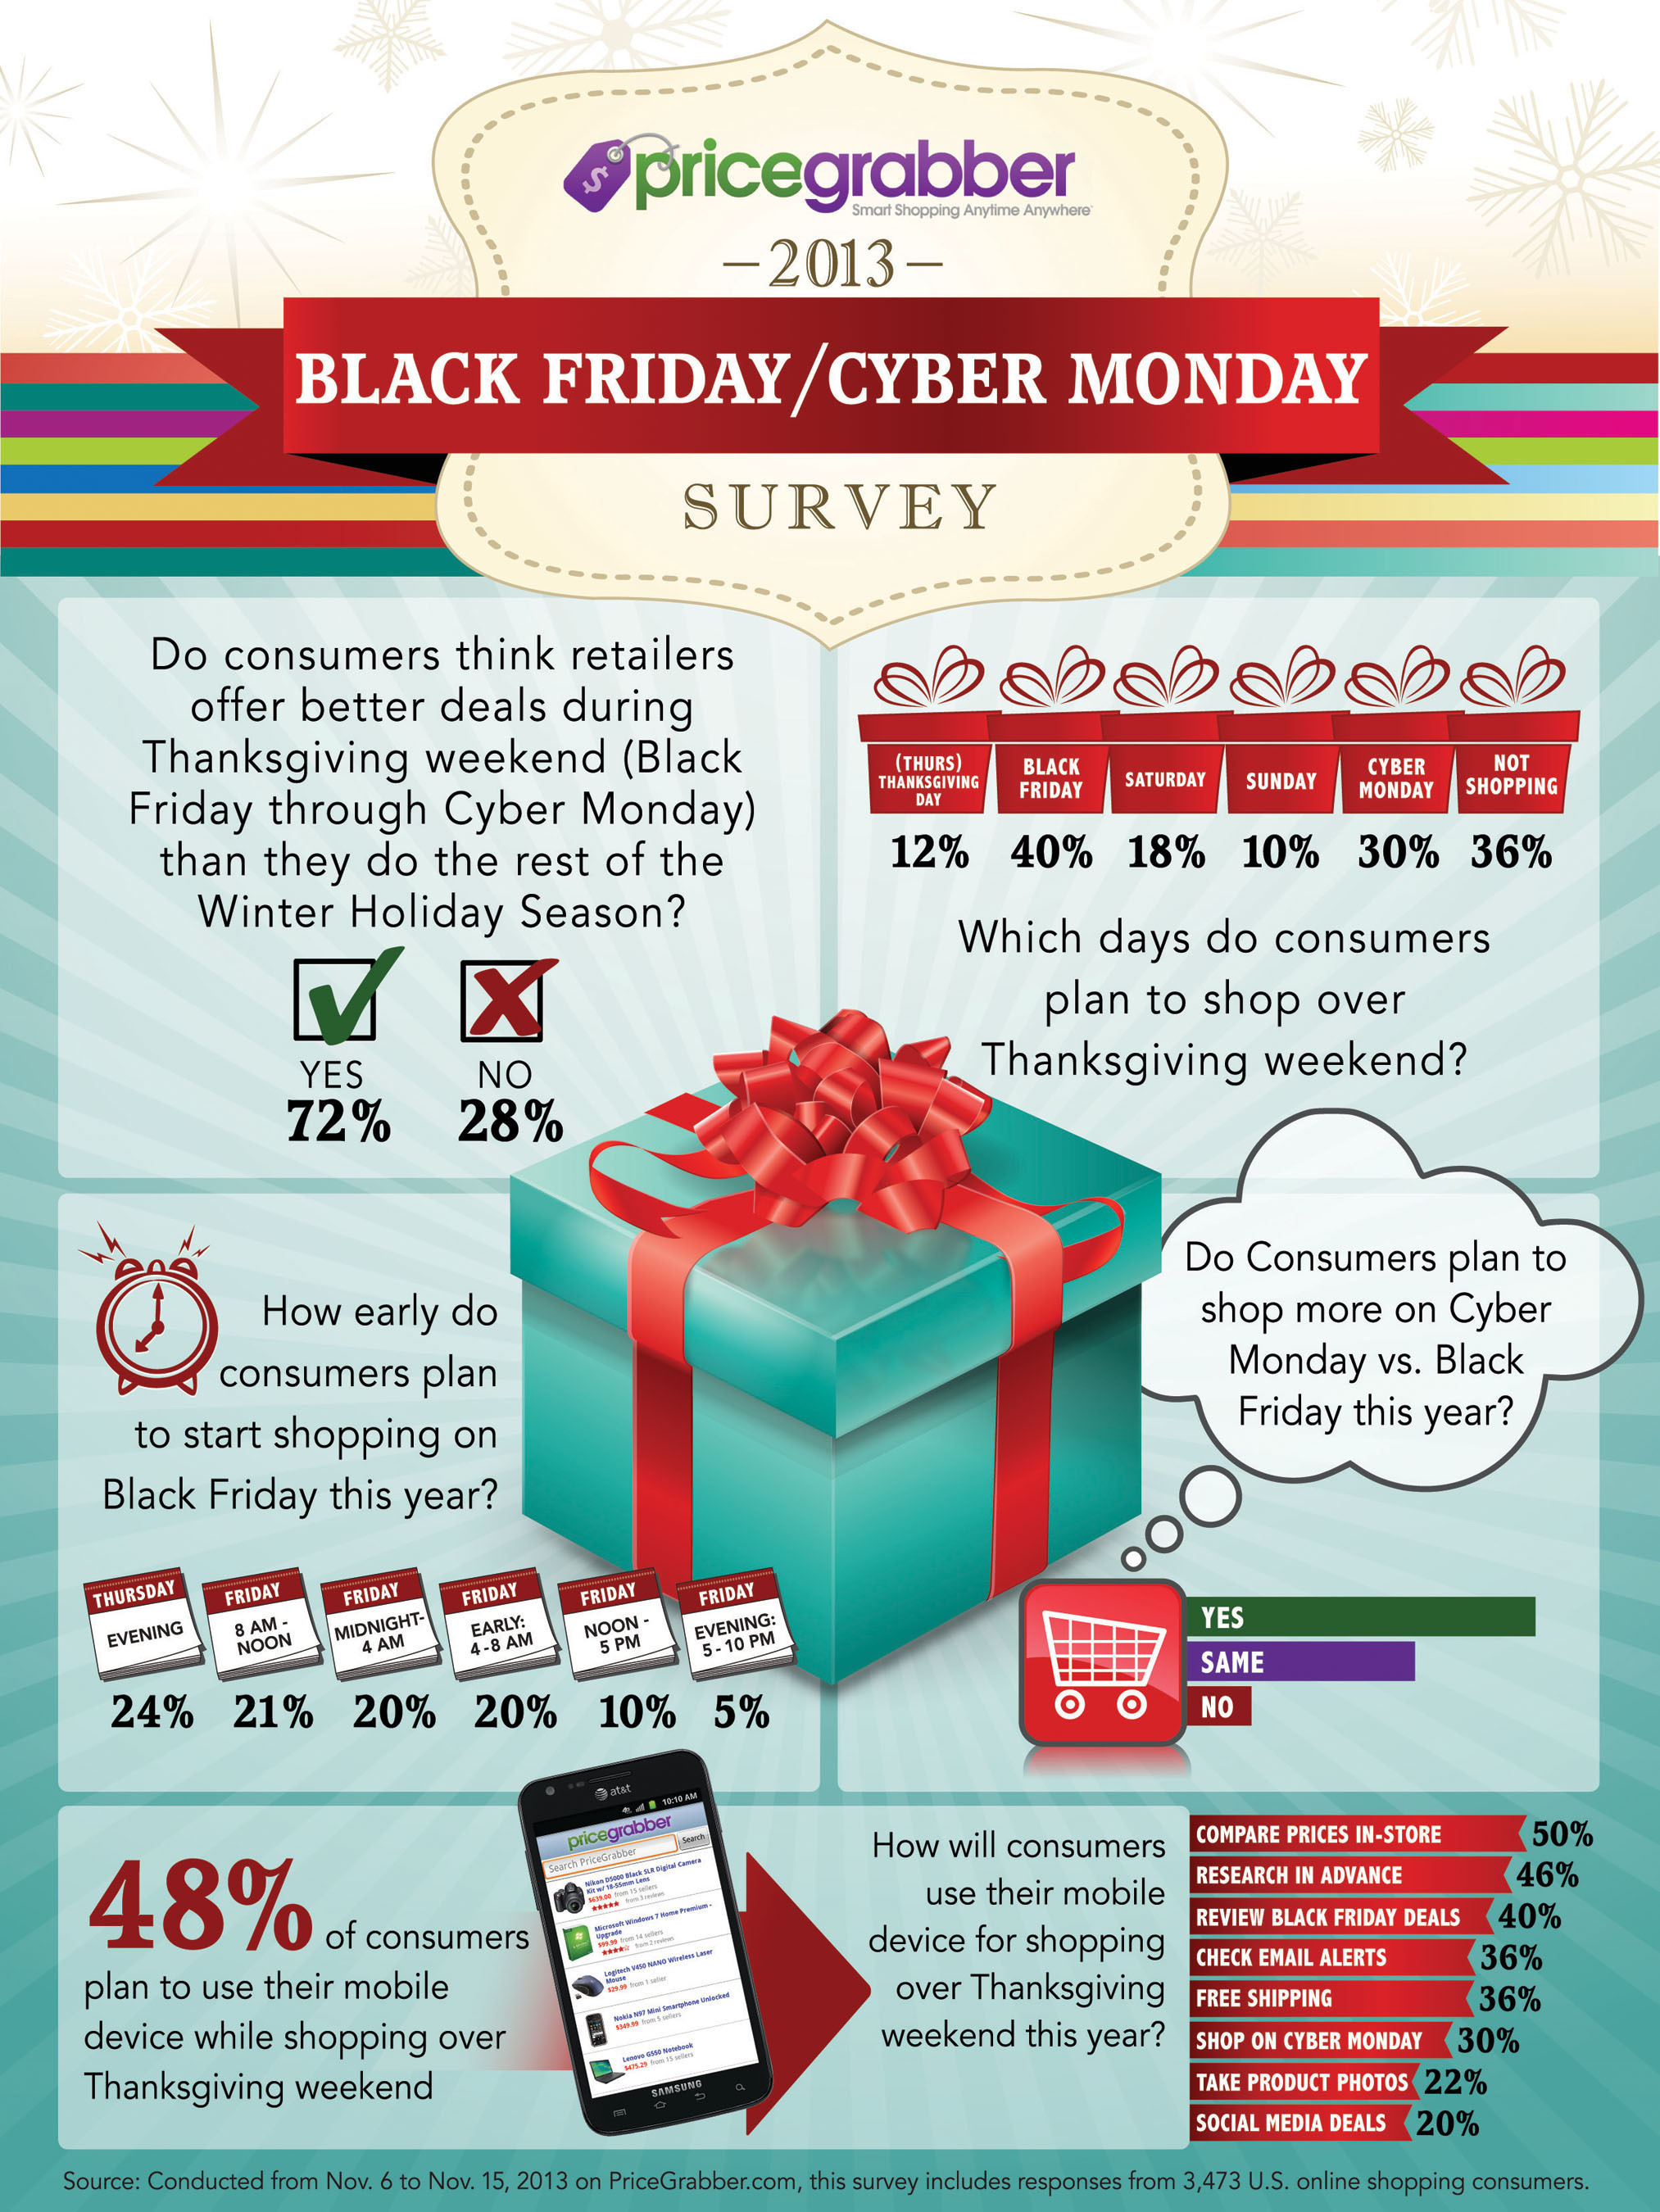 Black Friday and Cyber Monday Survey from PriceGrabber. (PRNewsFoto/PriceGrabber.com) ...